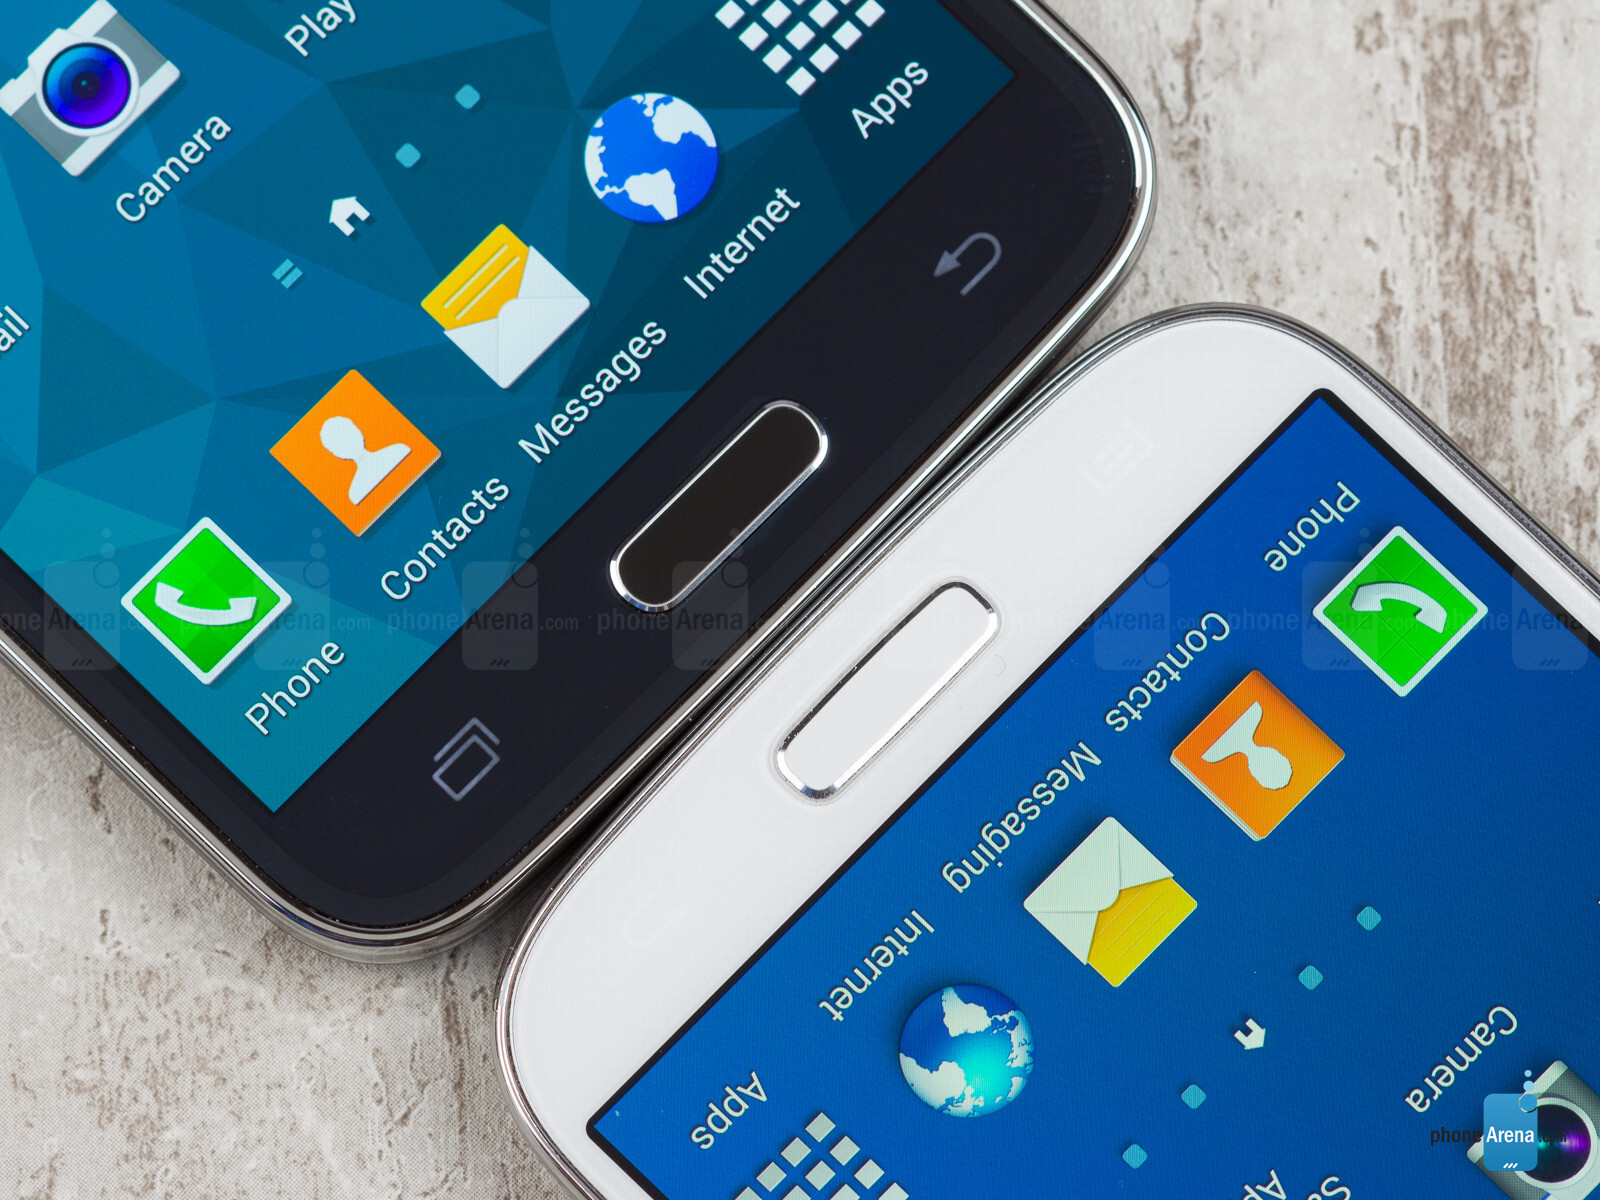 how to change the phone keyboard color on samsung s5